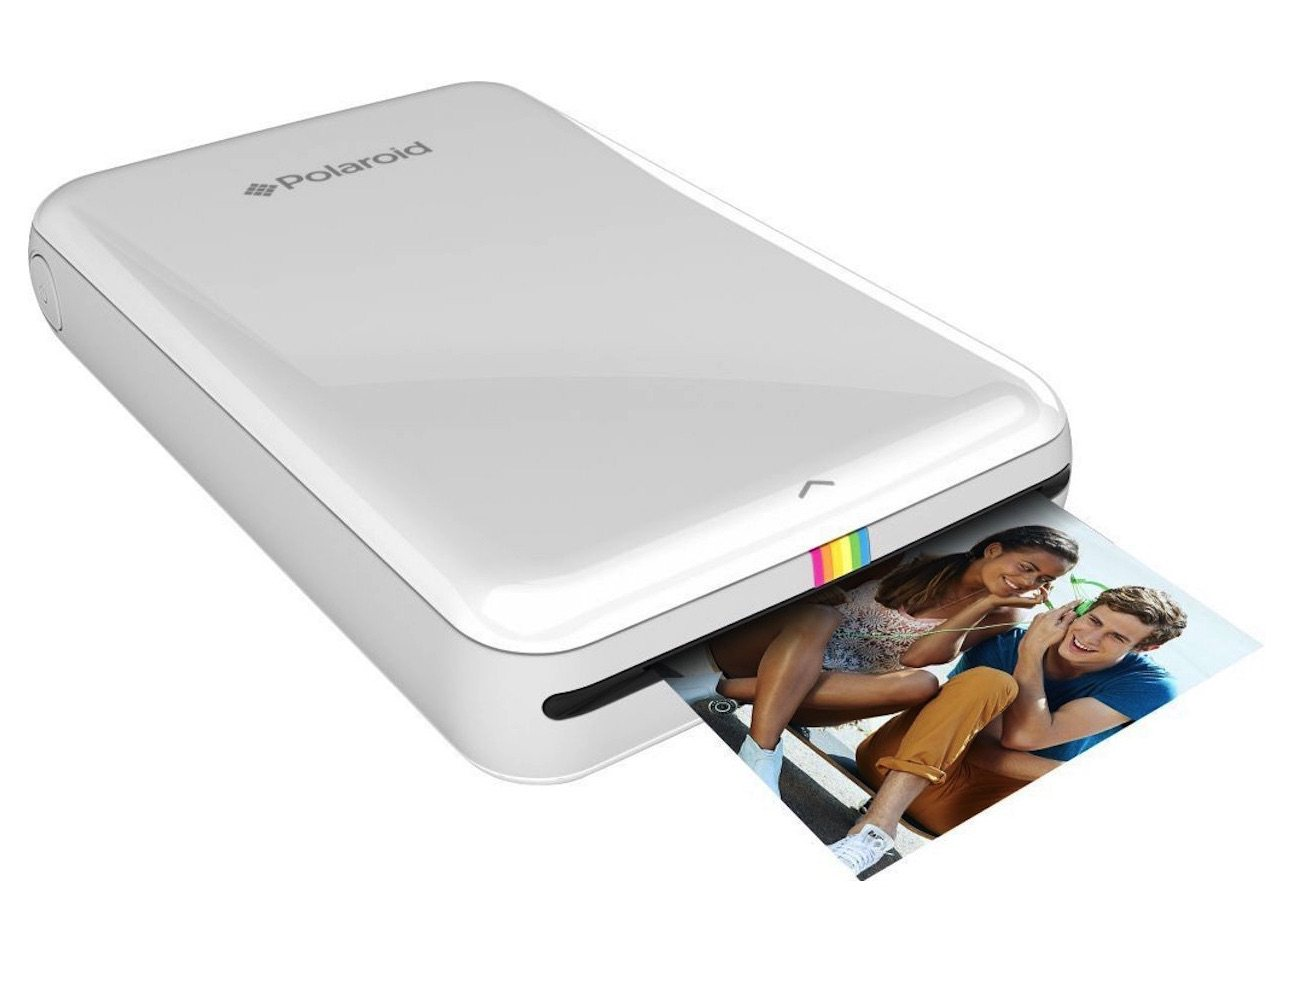 polaroid-zip-mobile-printer-02